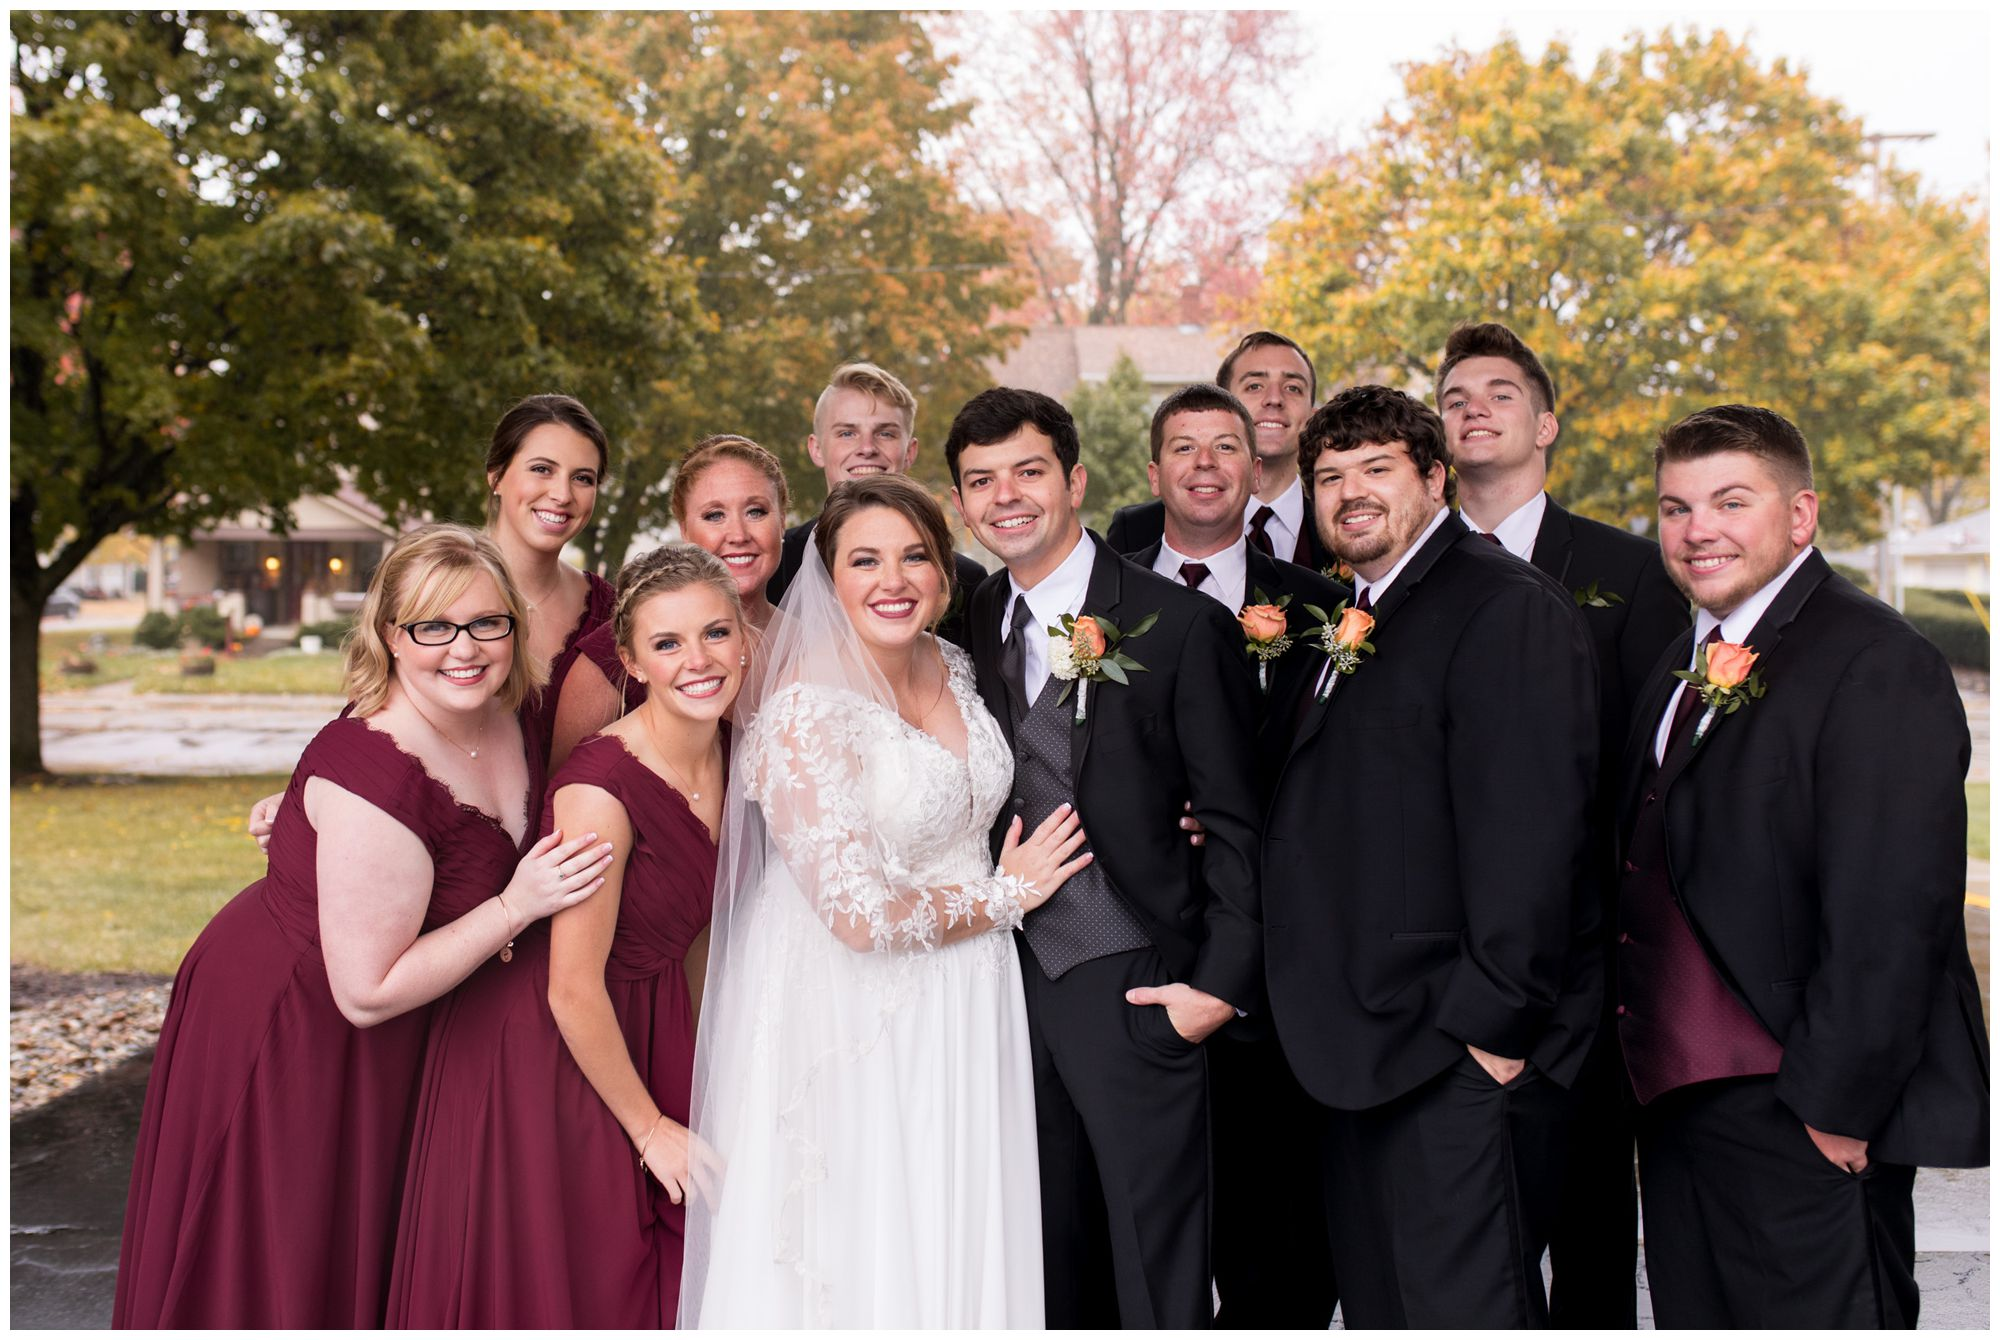 wedding party before Zion Lutheran Church wedding ceremony